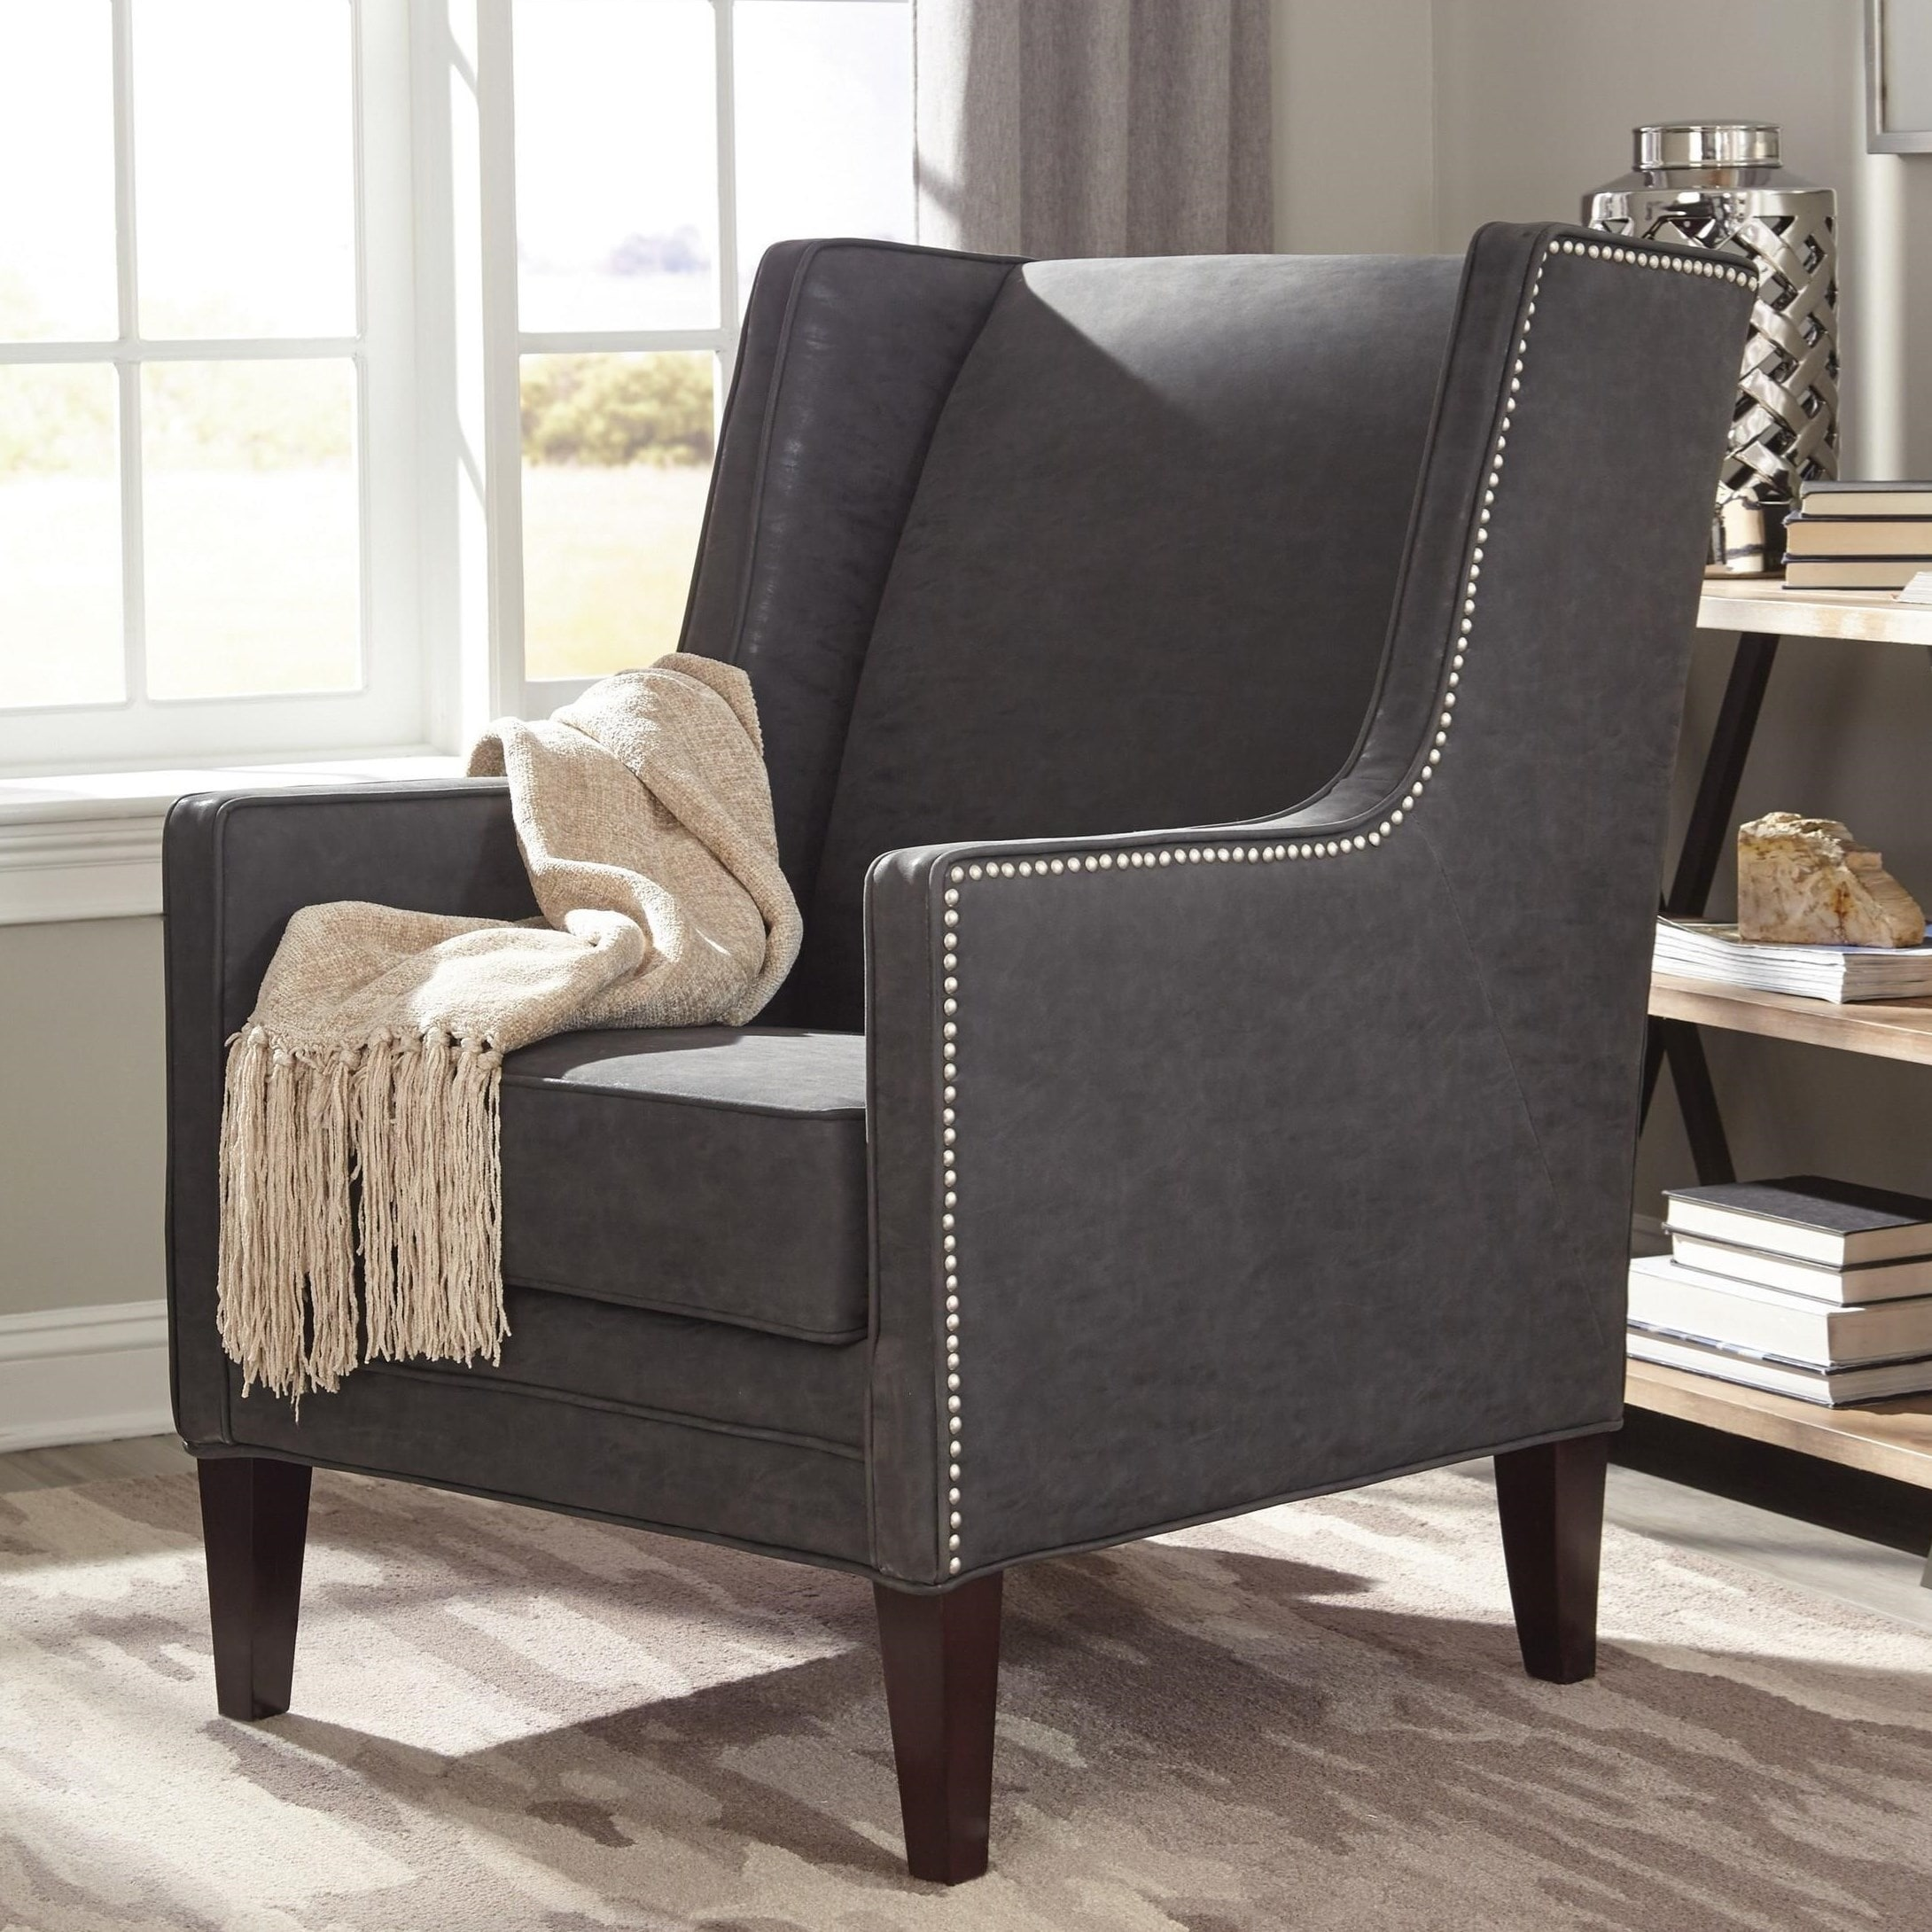 Wingback Modern Design Living Room Charcoal Grey Accent Chair